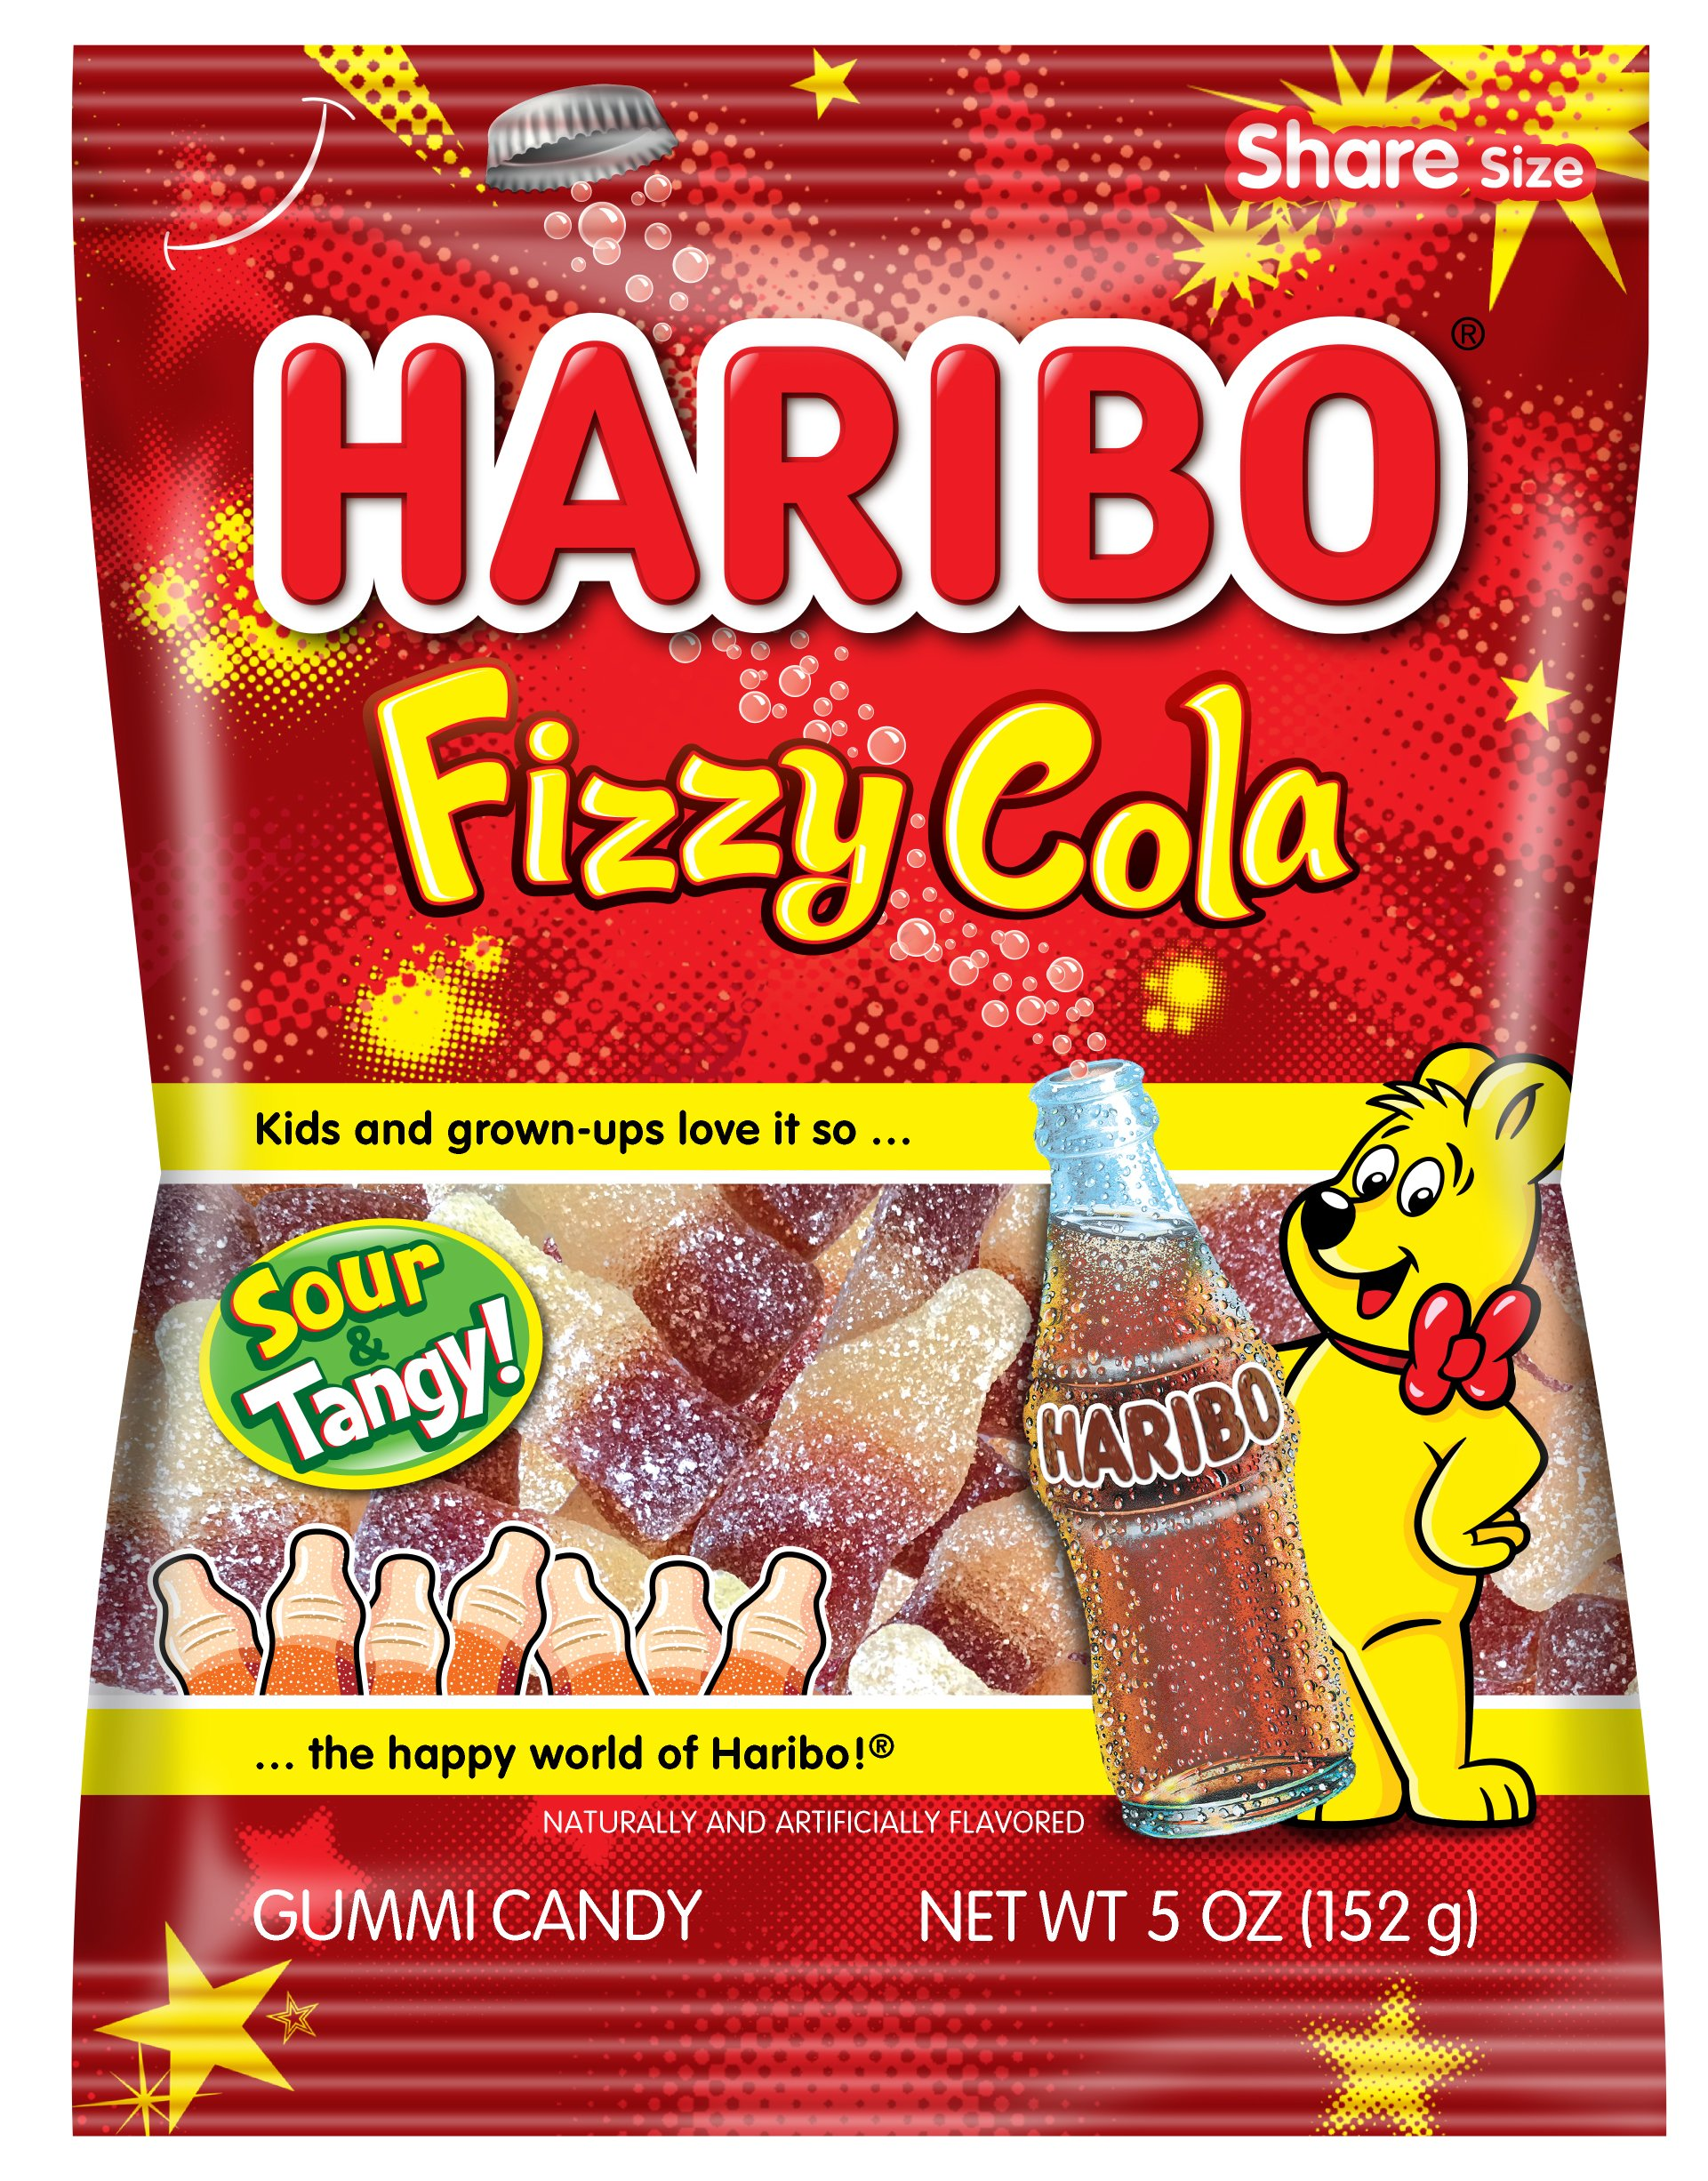 Put Down the Haribo: Sugars Affecting More Than Just Our Waistlines